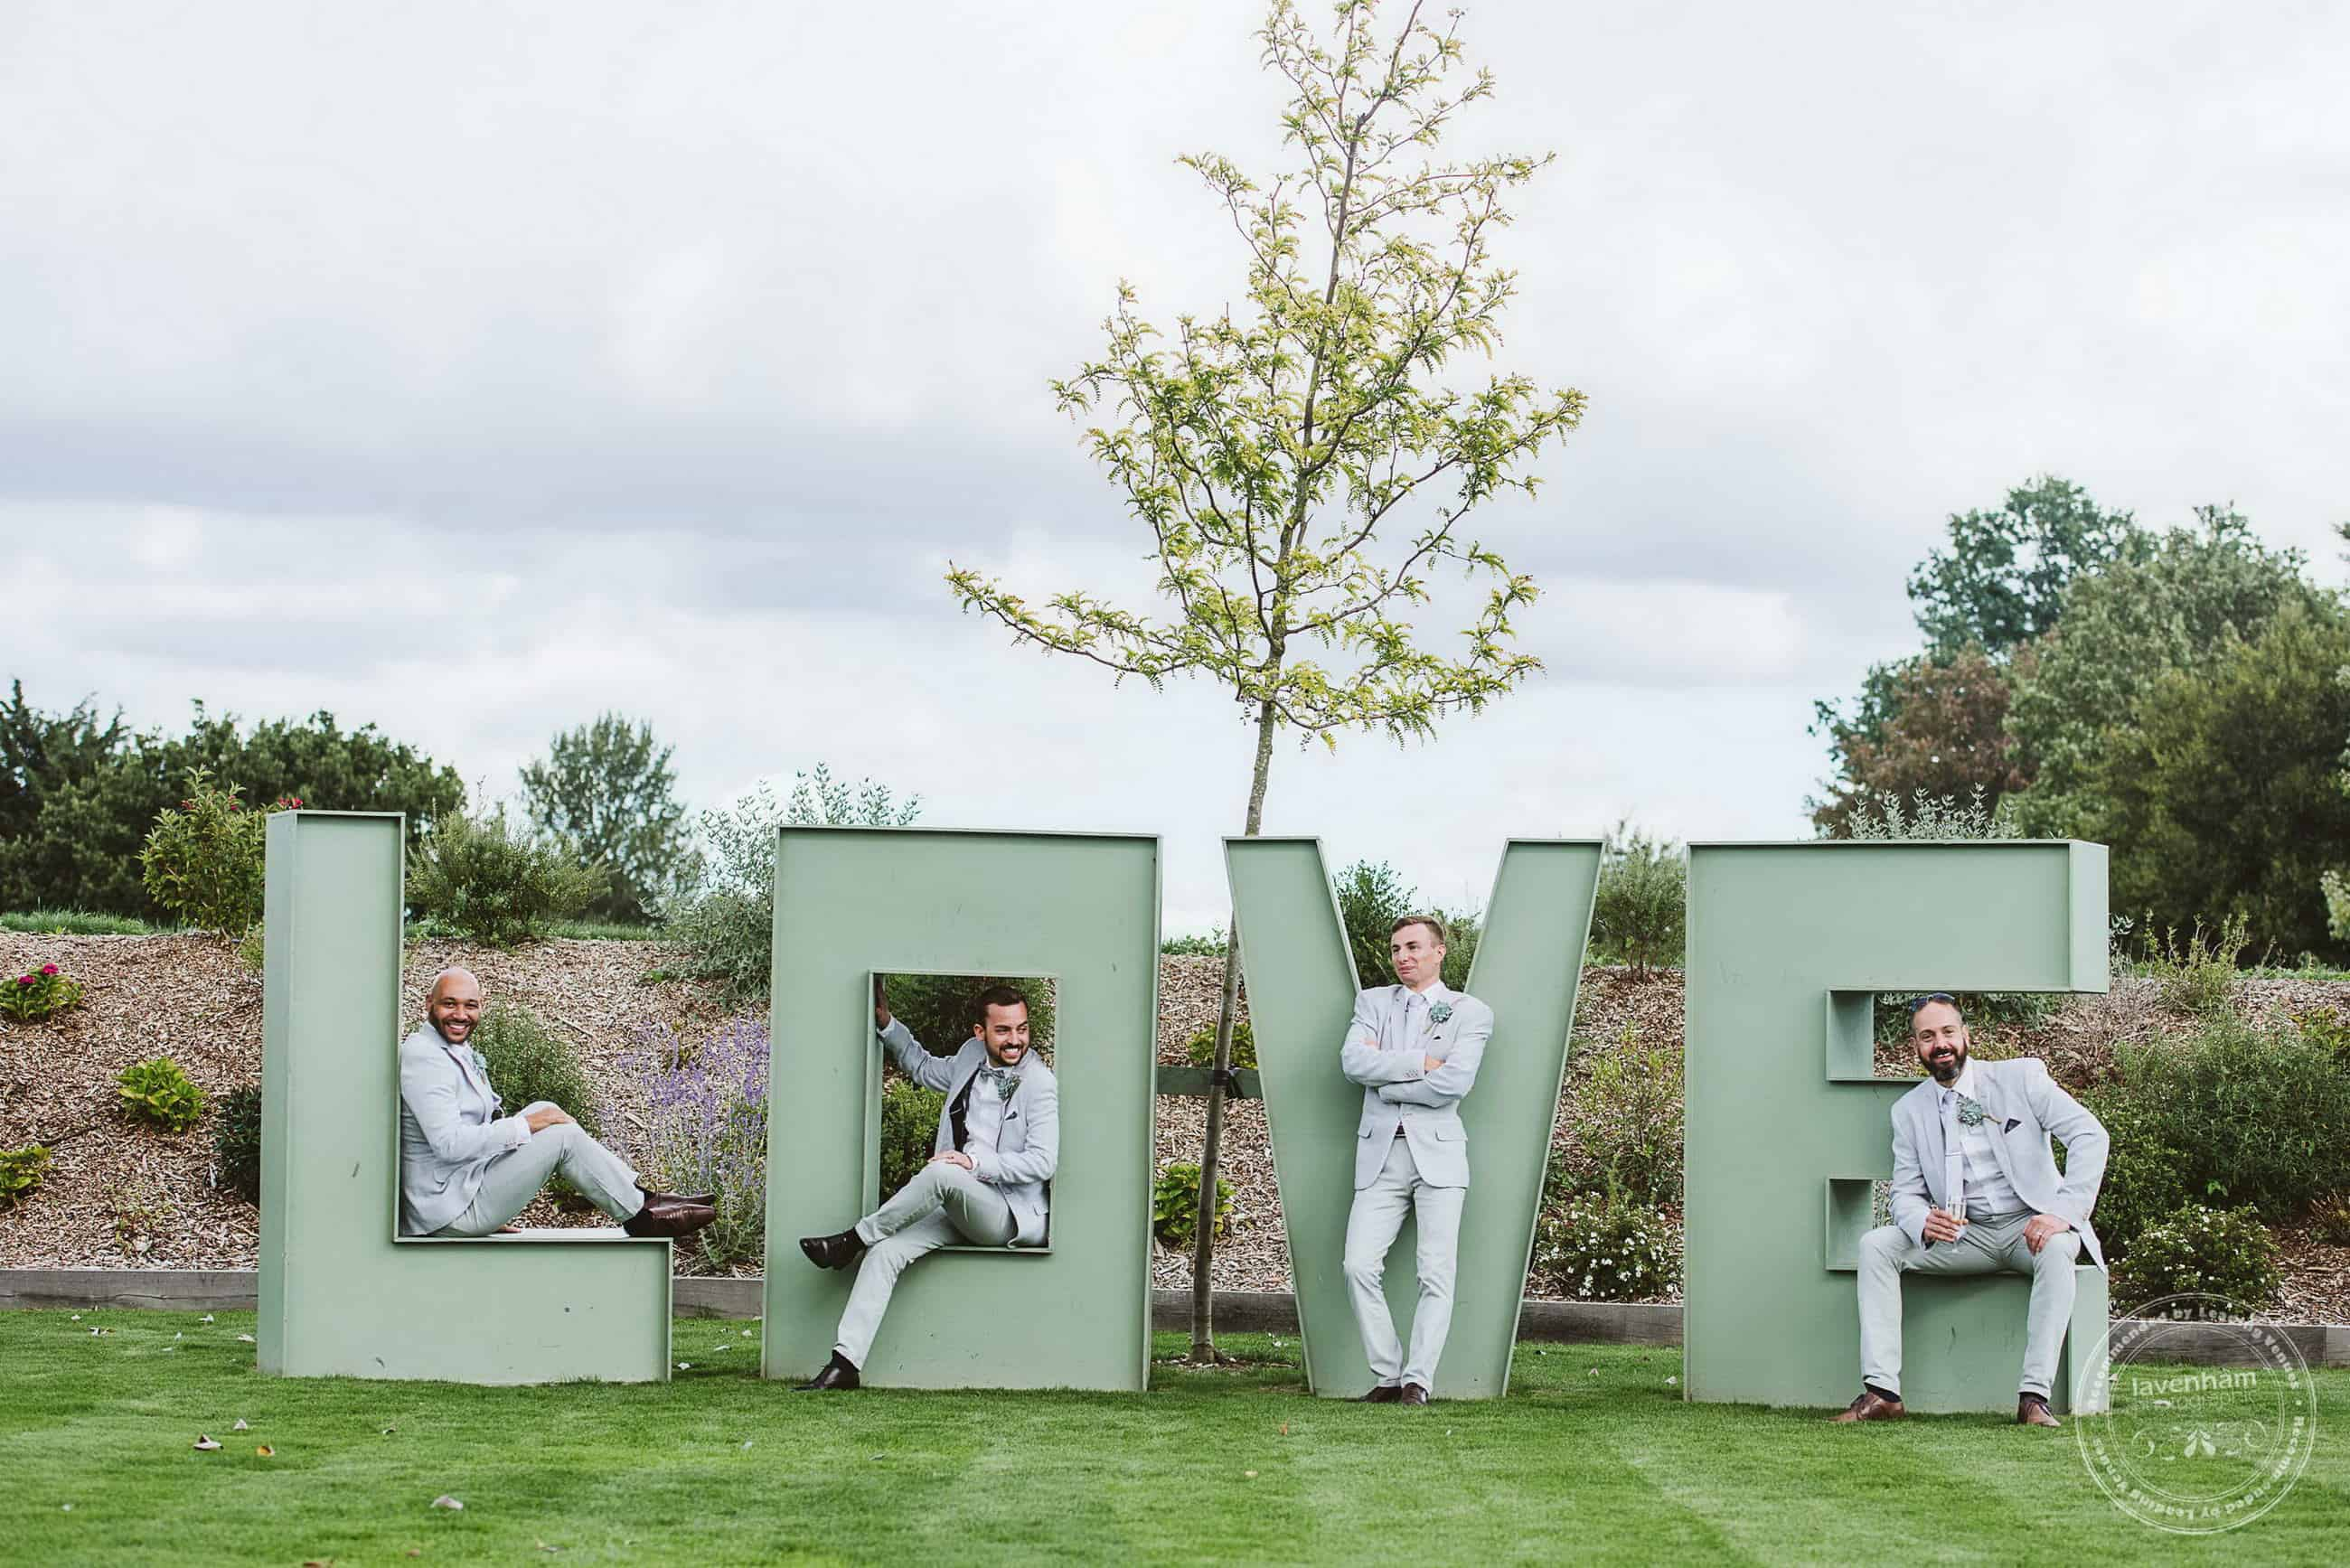 Groomsmen sit within the LOVE marquee letters in the ground at the Channels estate